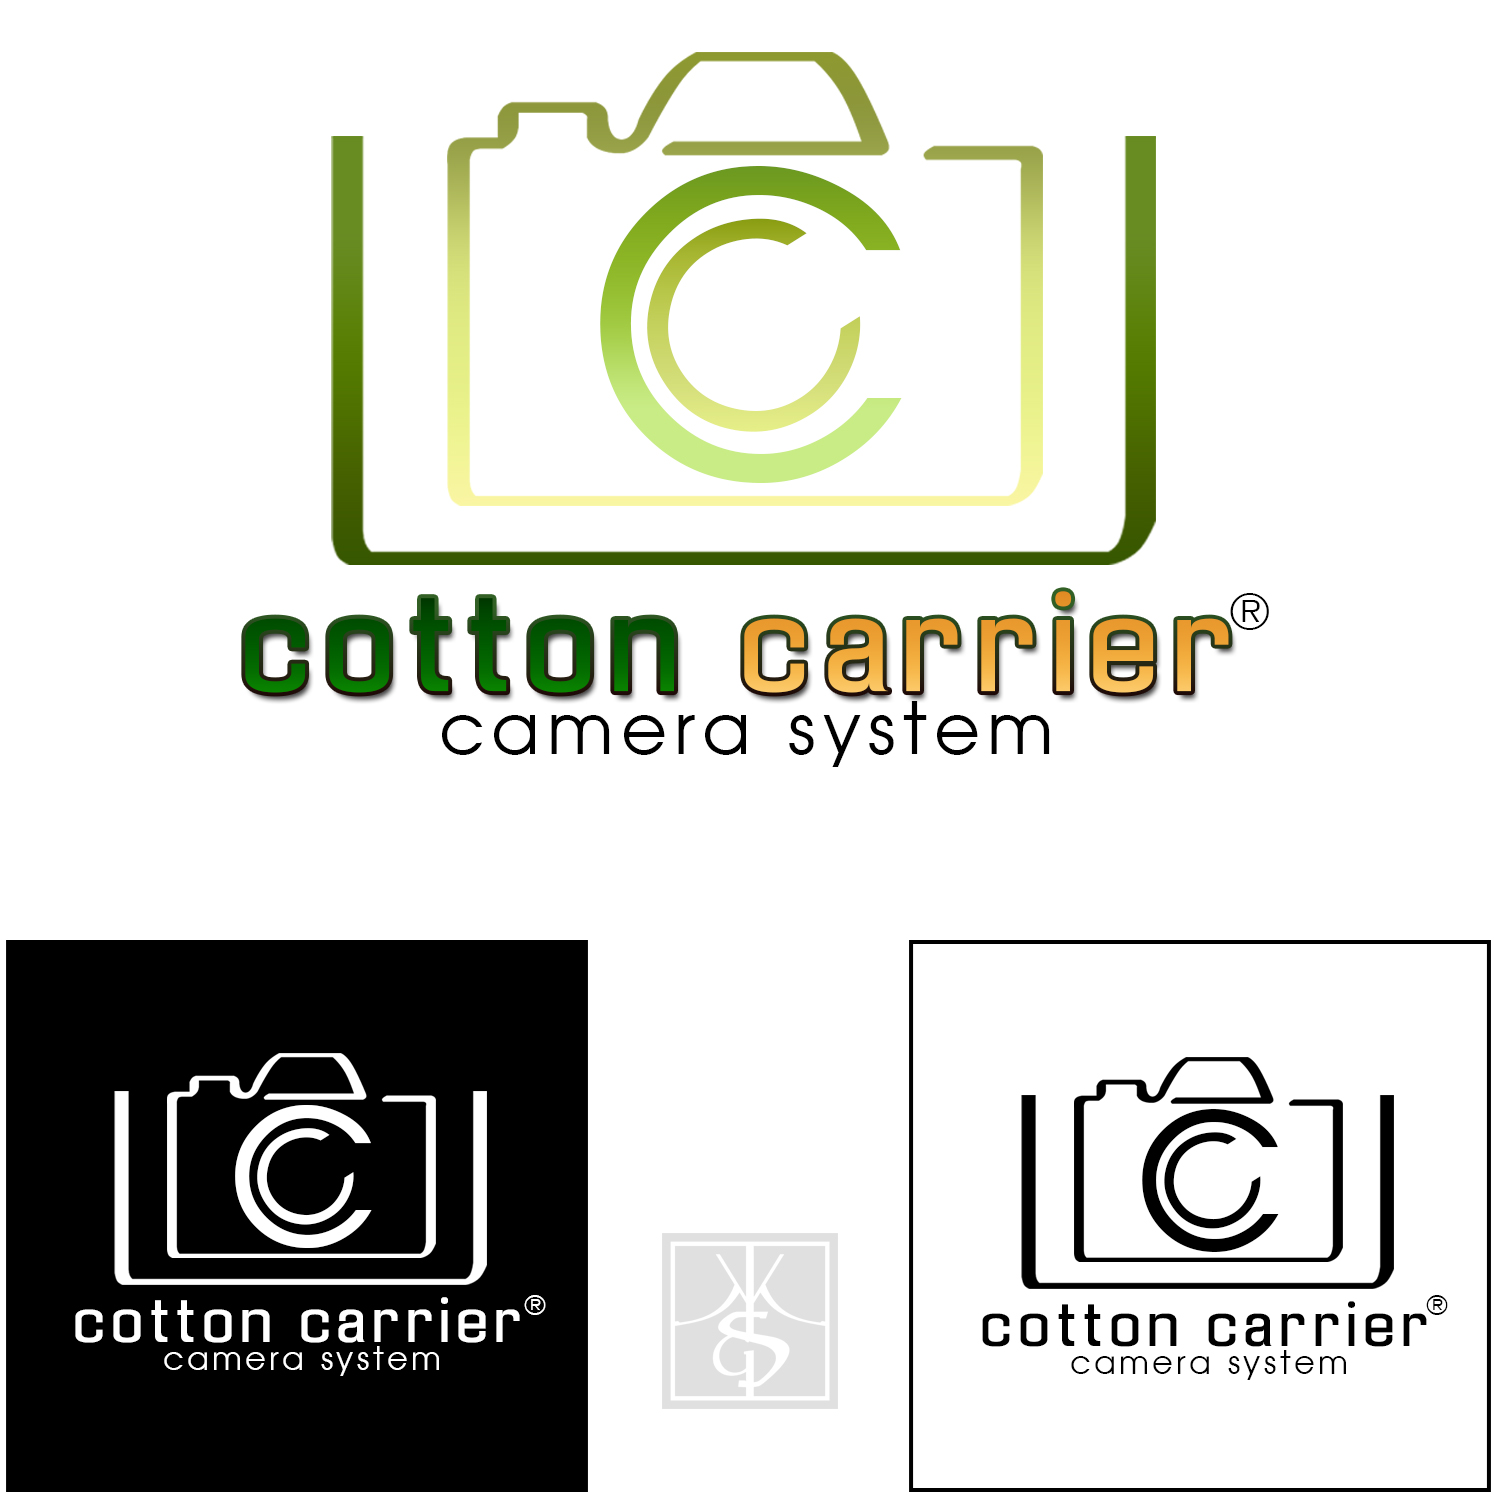 Logo Design by Kivi Marc Sarmiento - Entry No. 43 in the Logo Design Contest Cotton Carrier Camera Systems Logo Design.